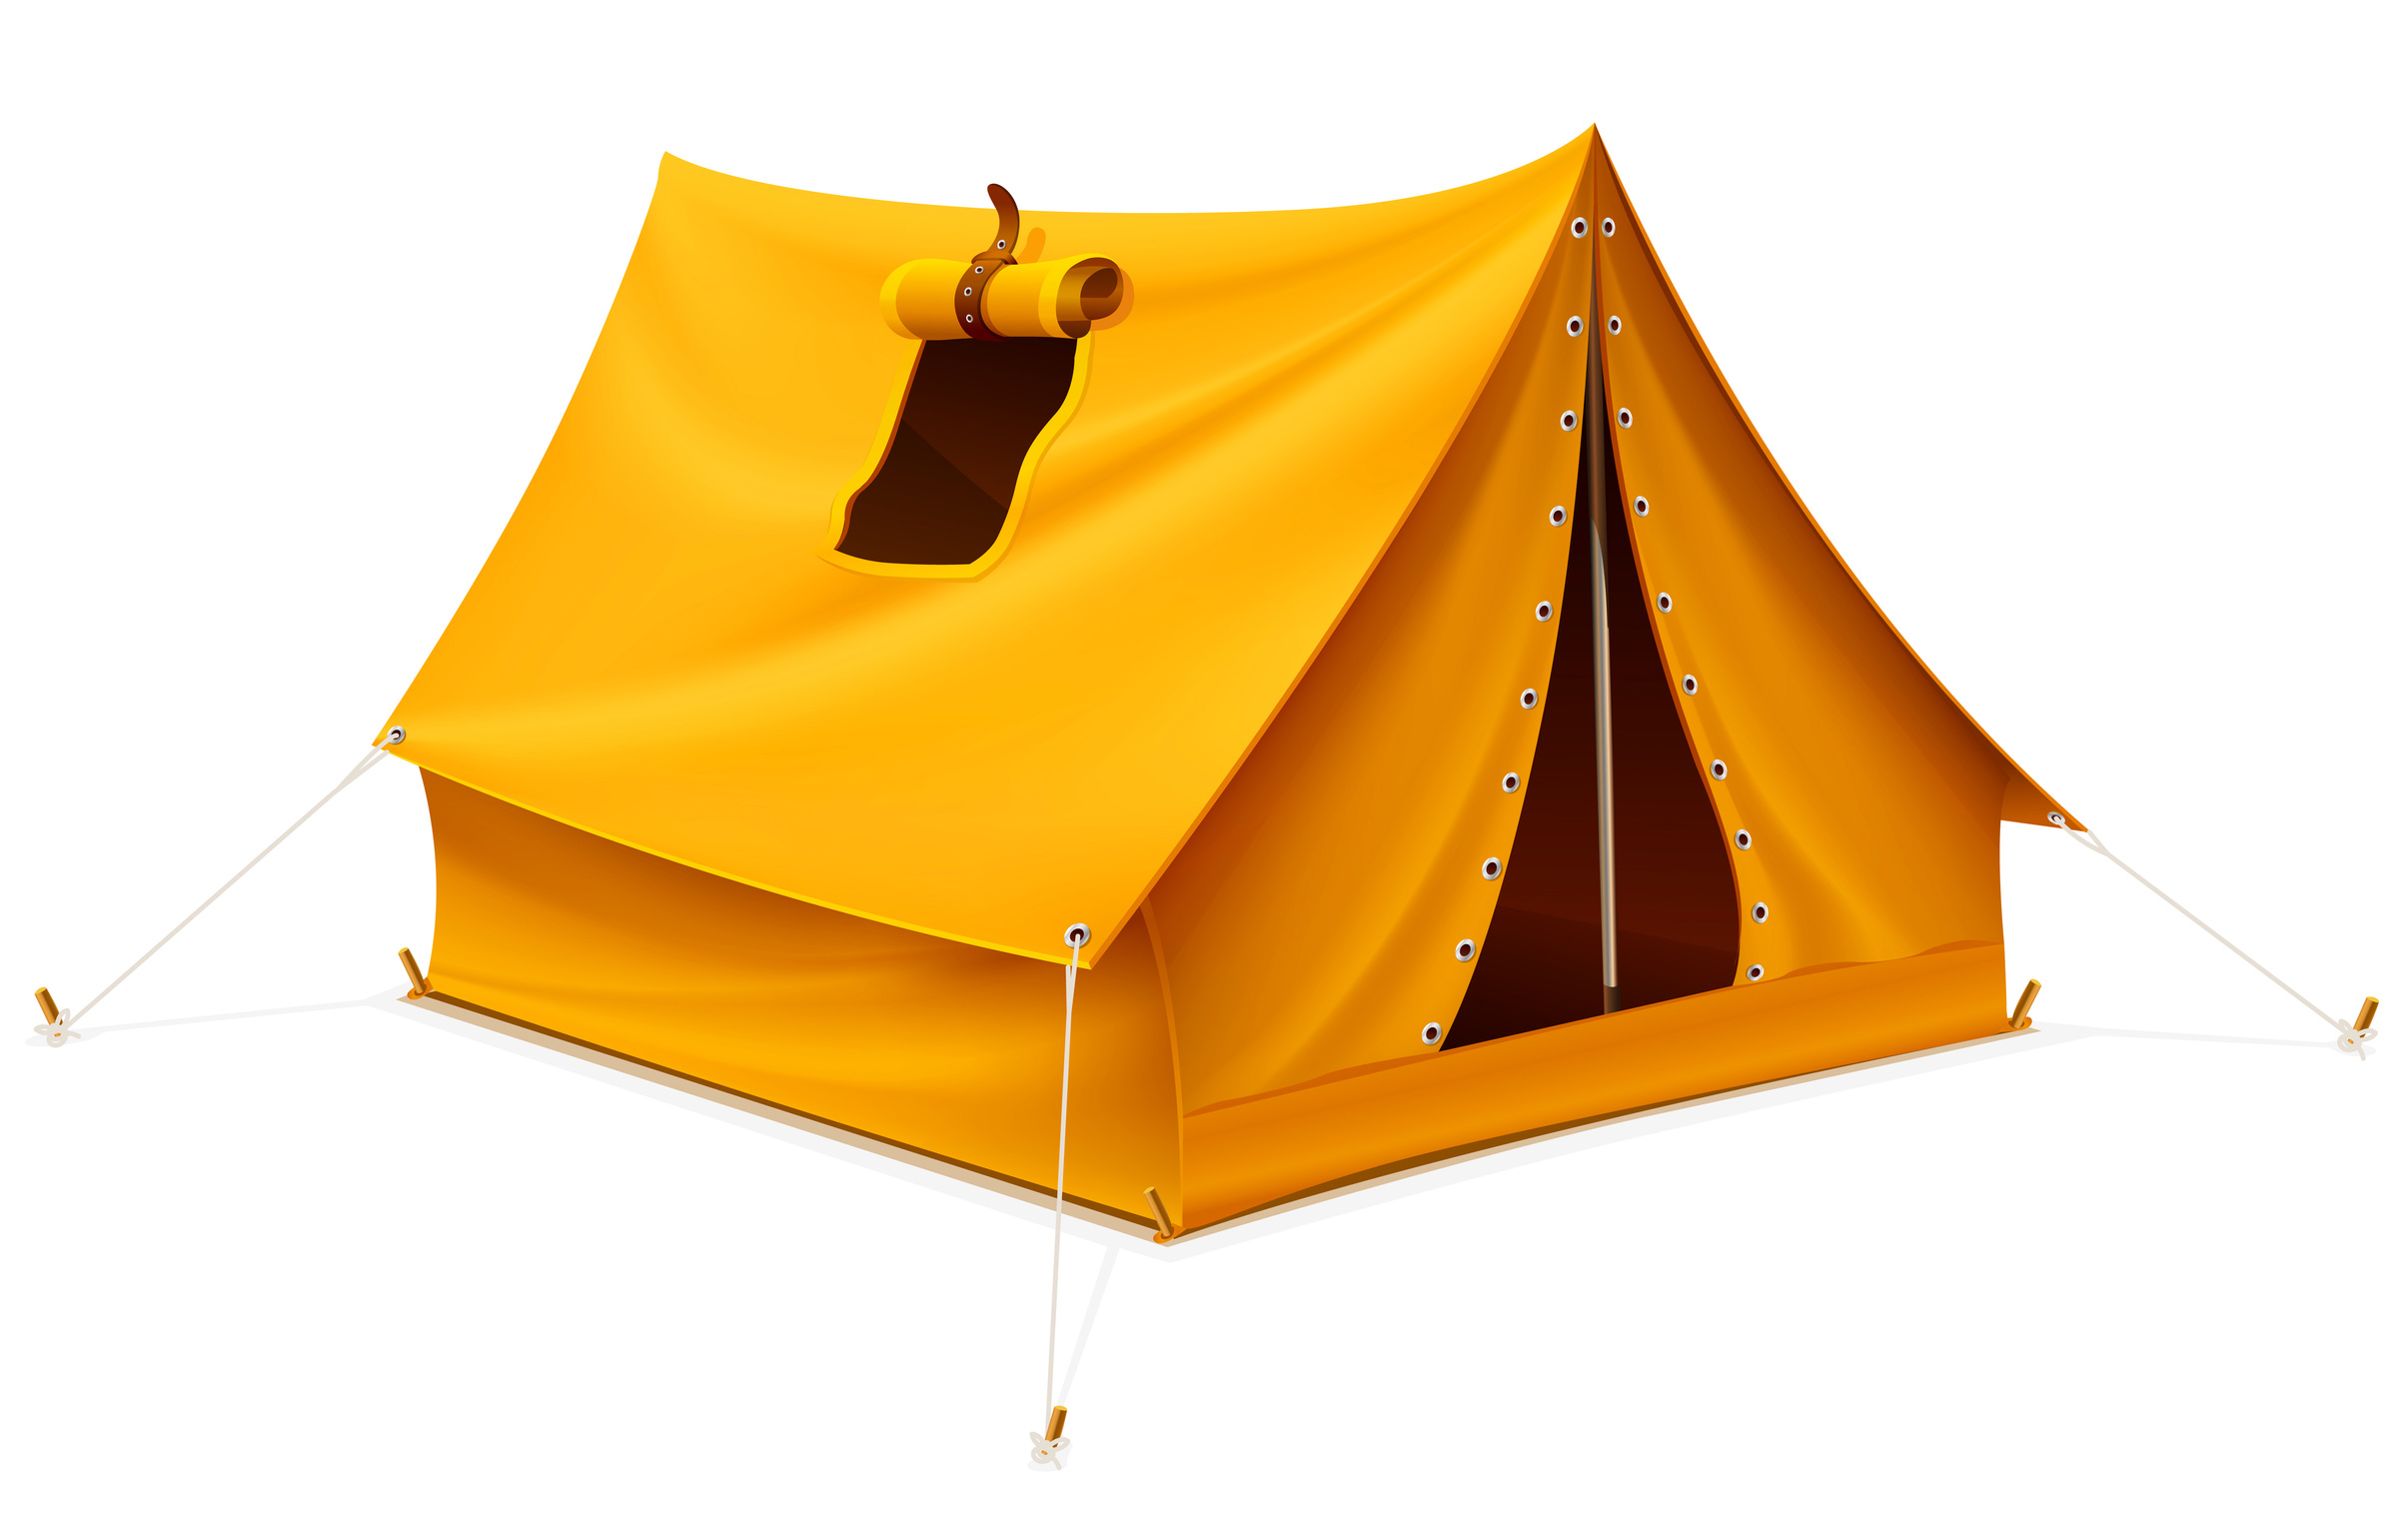 Tent clipart yellow Clipart Orange Tent Tent Icons